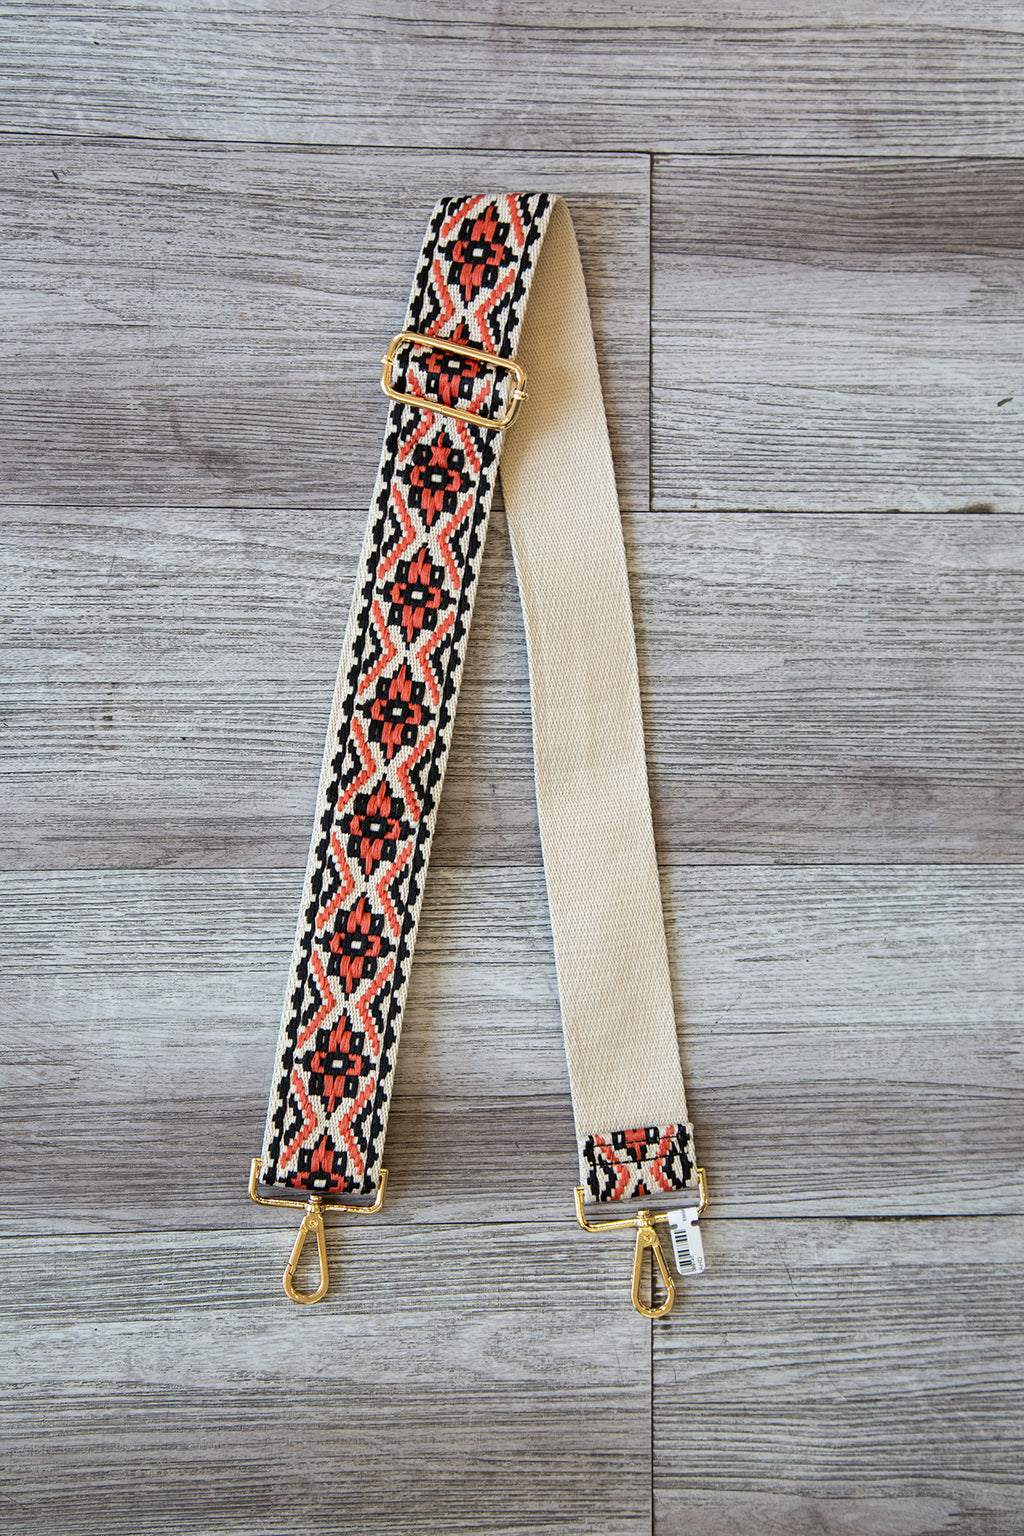 Embroidered Bag Strap